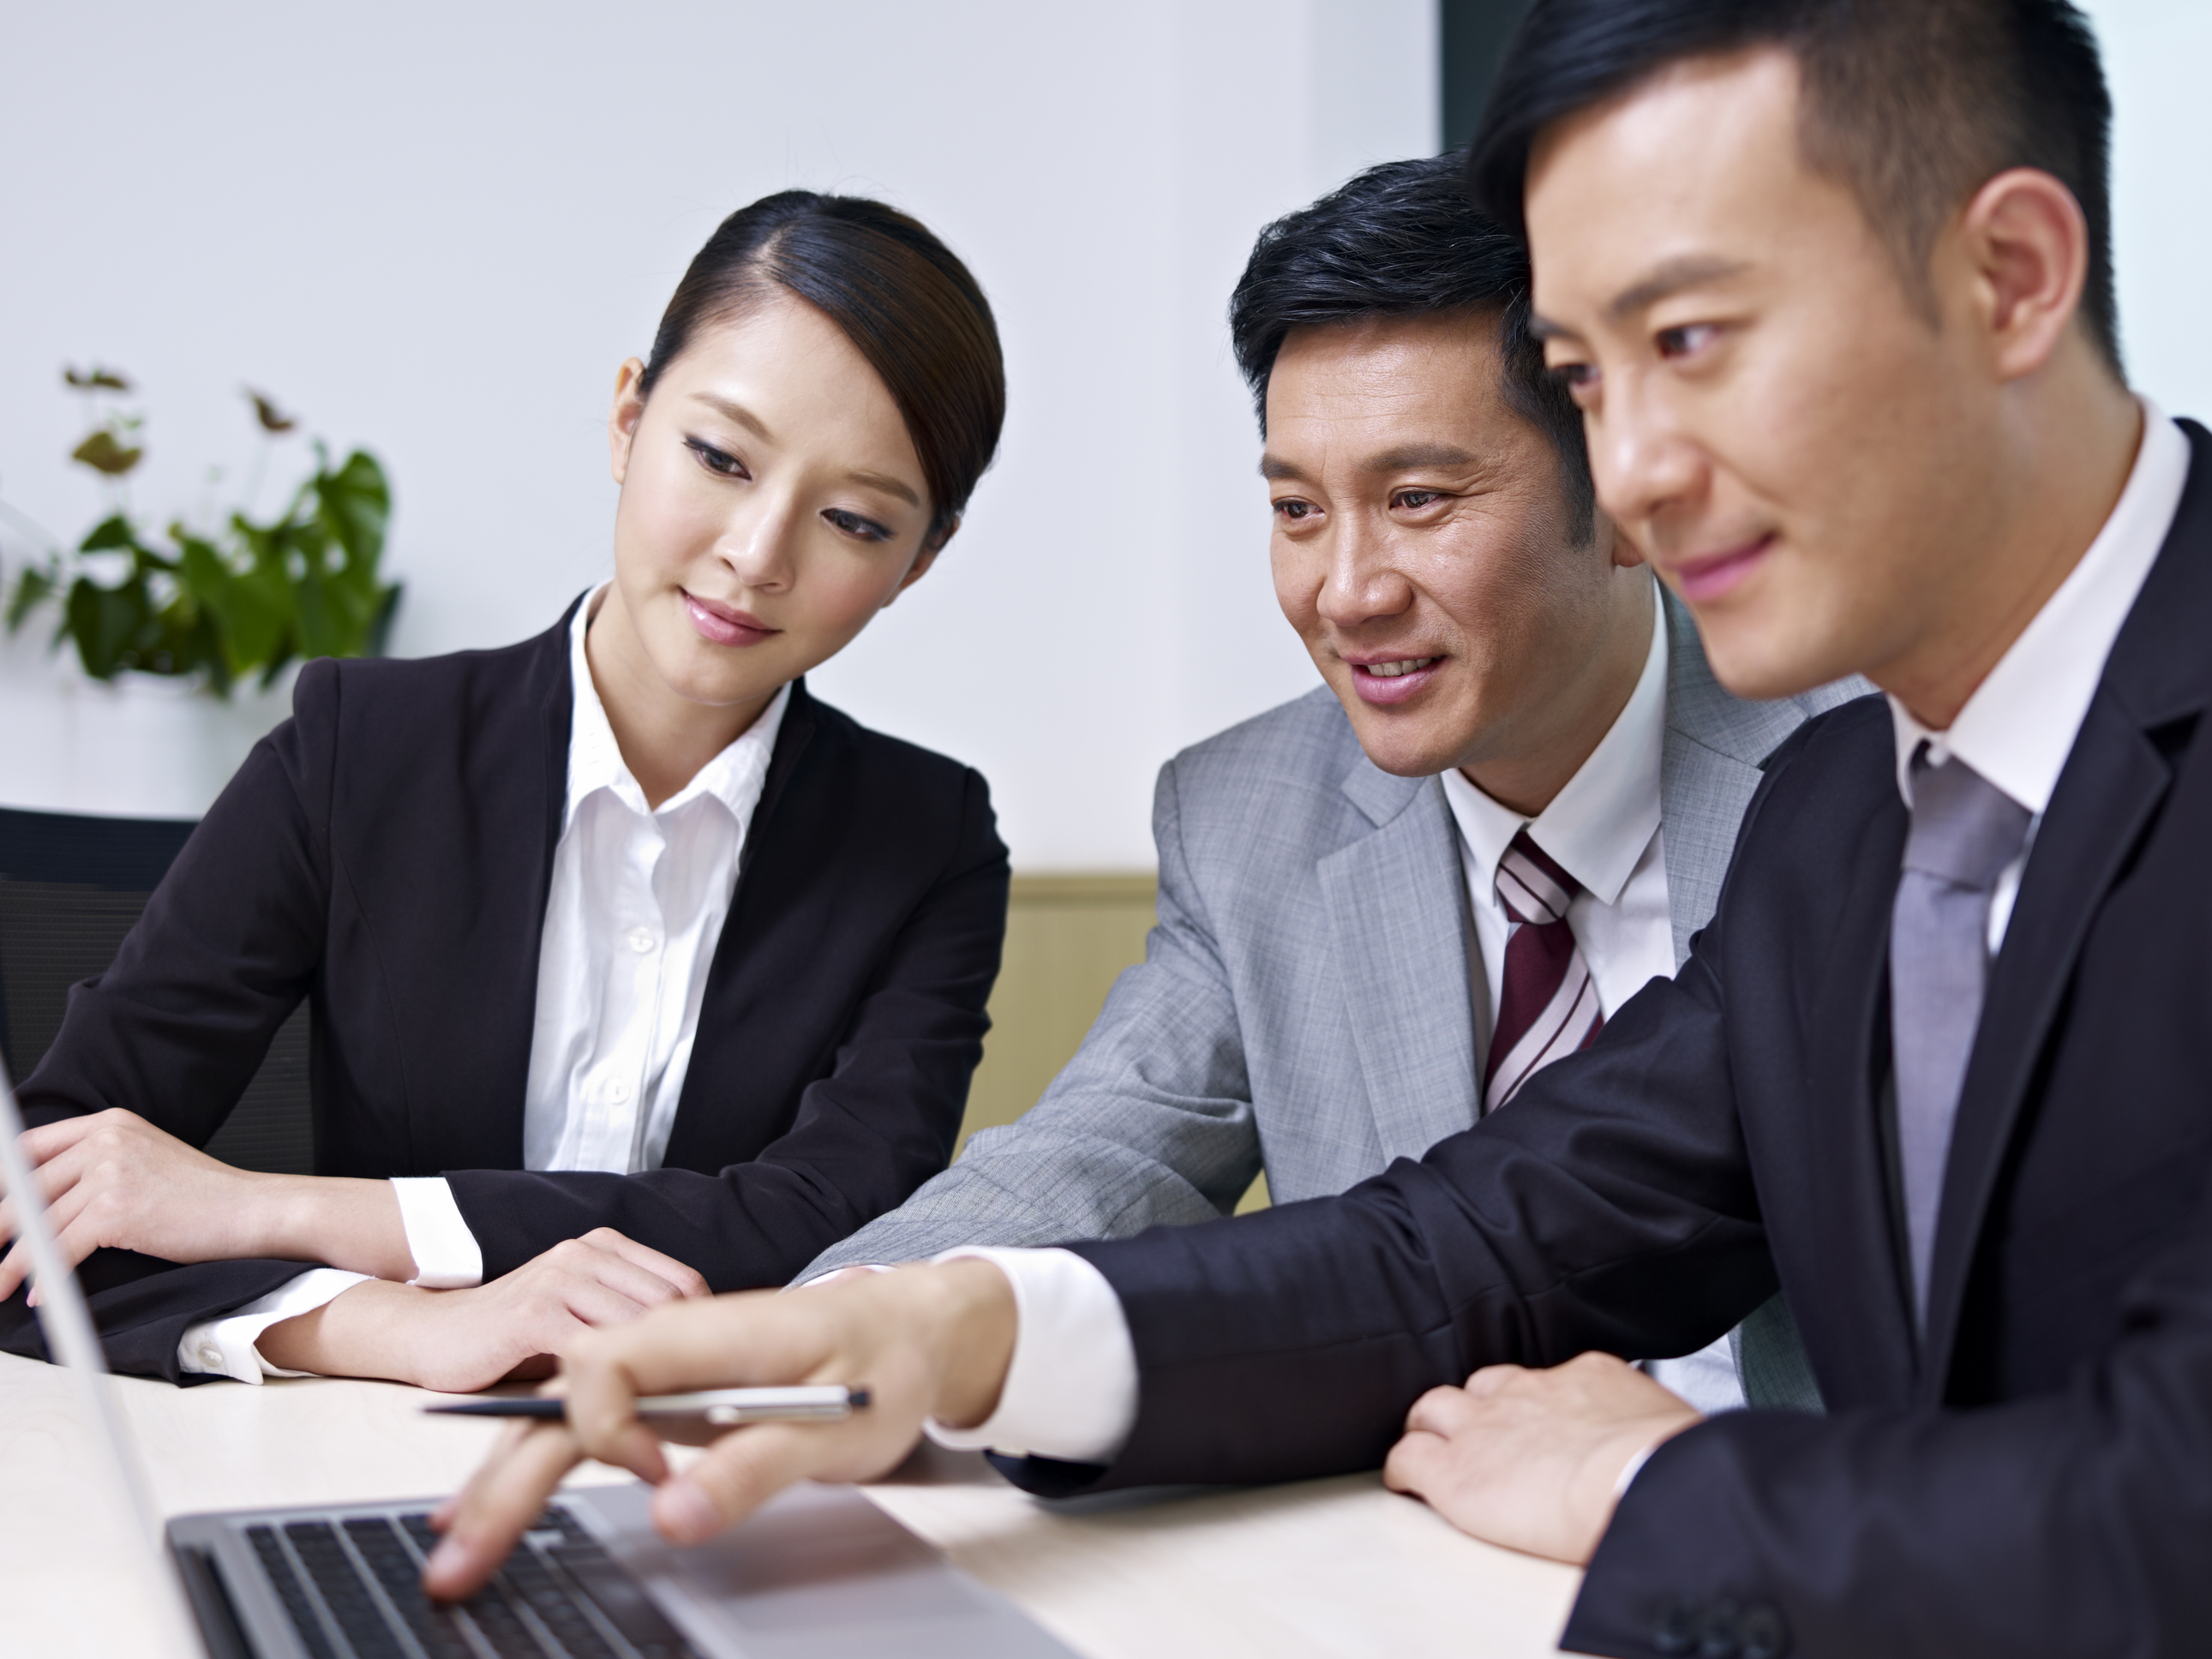 Lawyers: How to conduct effective client pitch meetings